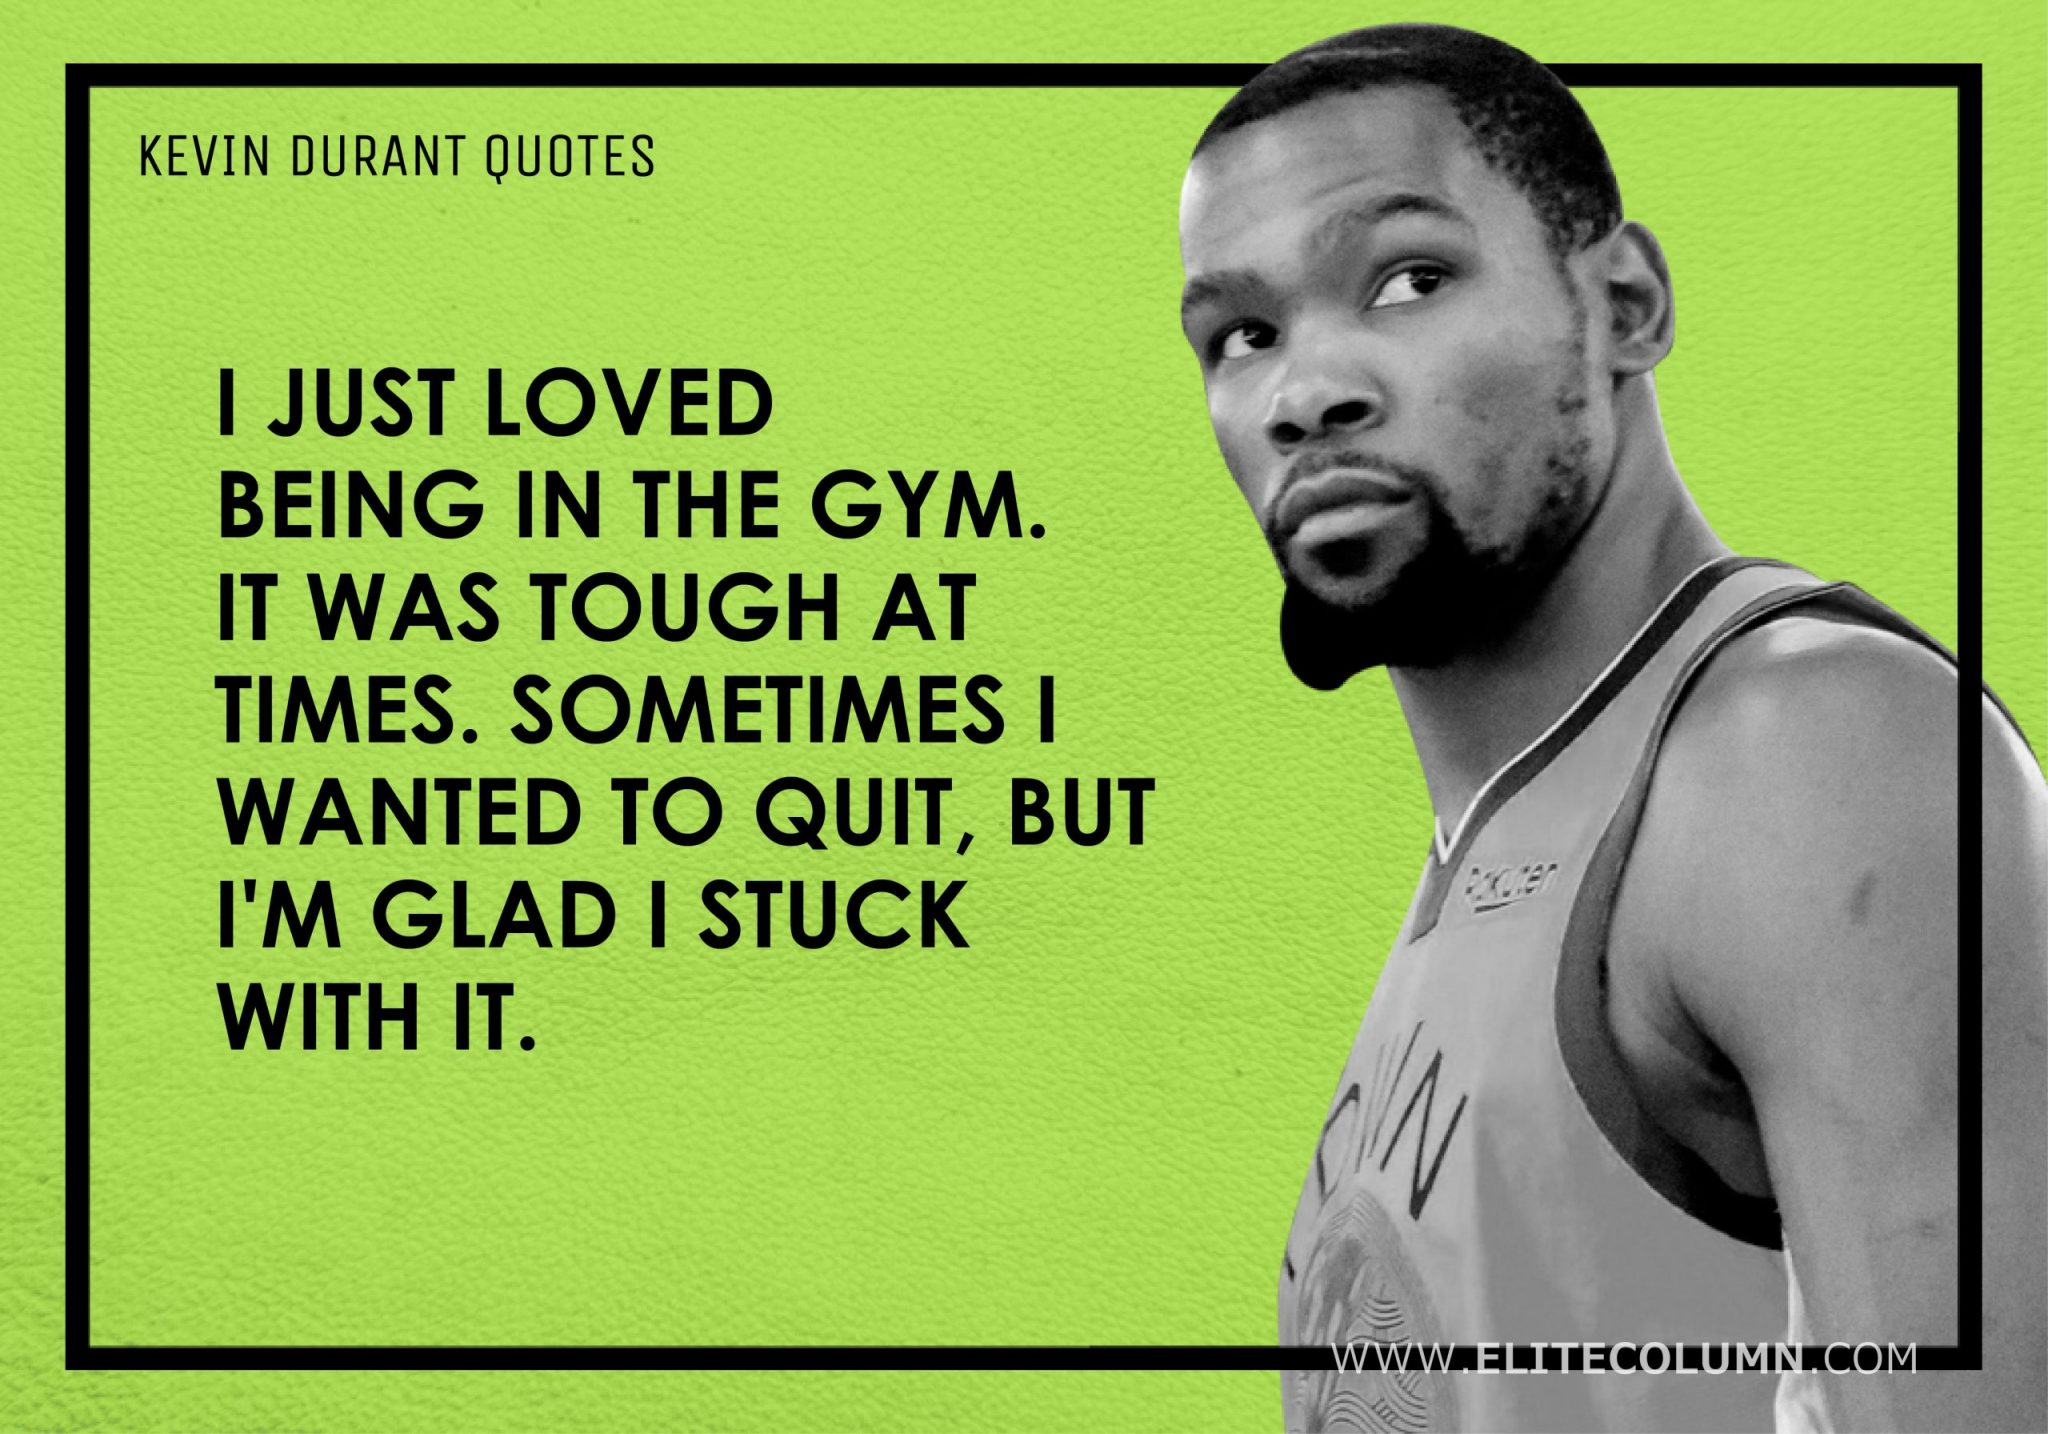 Kevin Durant Quotes (14)